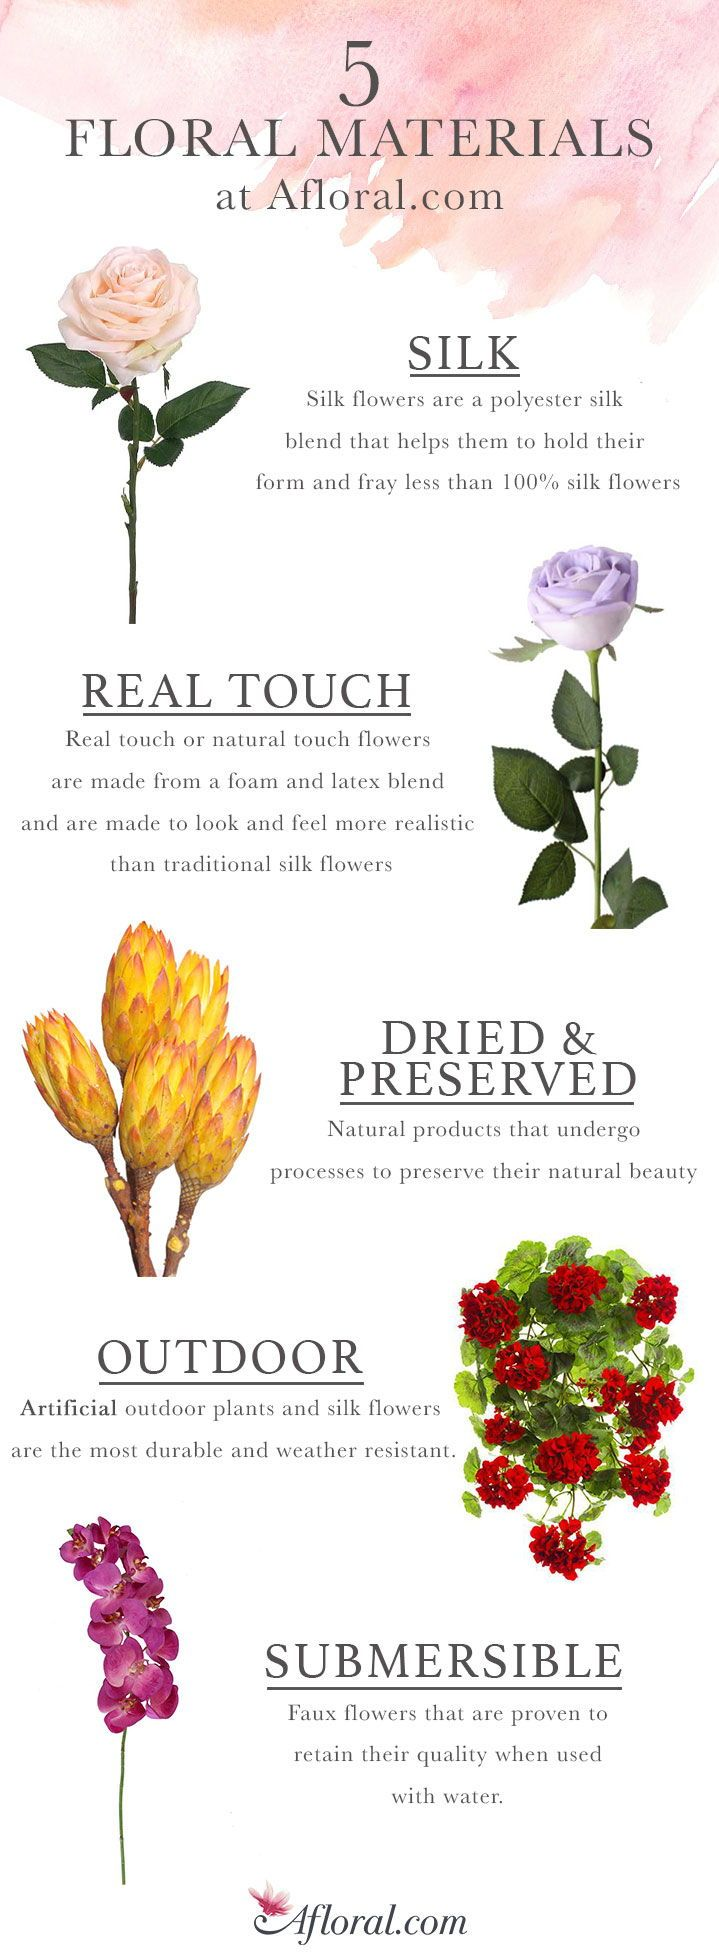 Find Silk Flowers Real Touch Florals Dried And Preserved Flowers